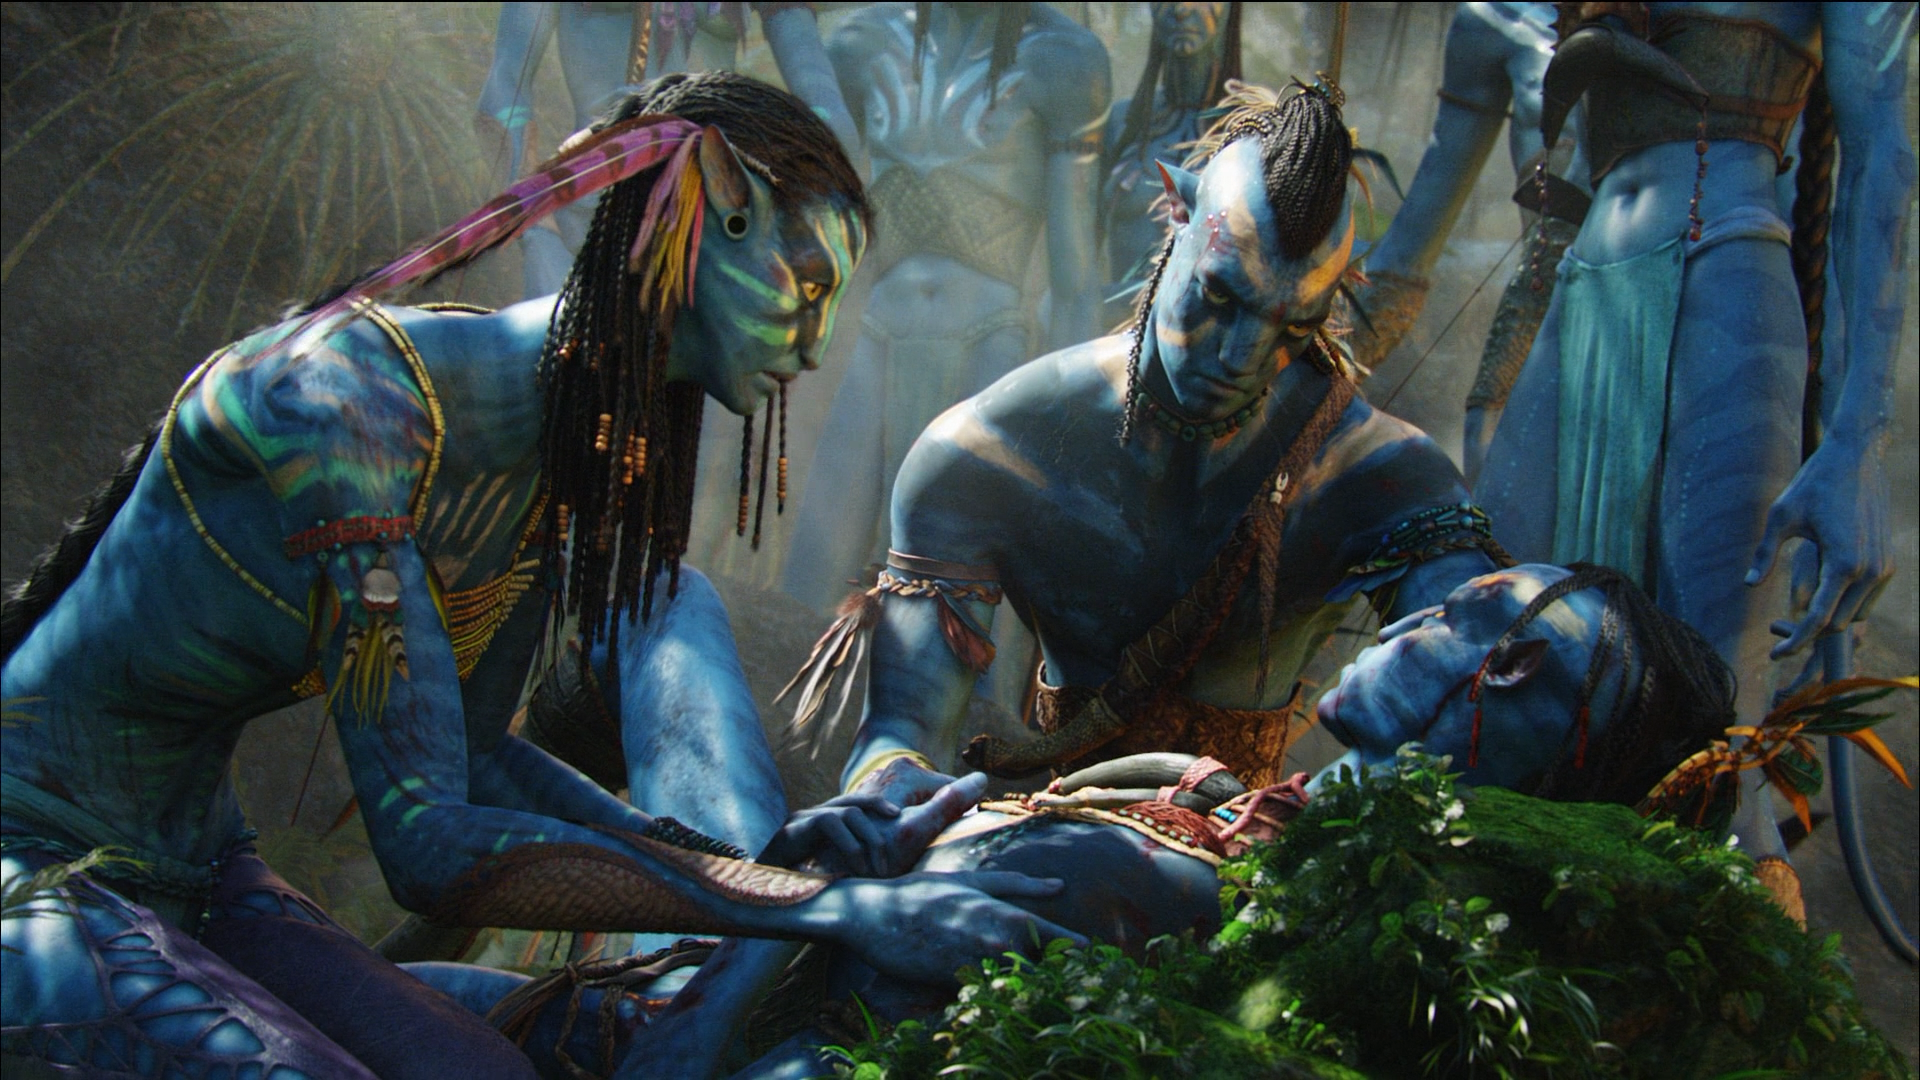 Wallpaper Neytiri Seze Avatar Hd Movies 4115: A Look Back At The 2009 Box Office Smash, Avatar, By James